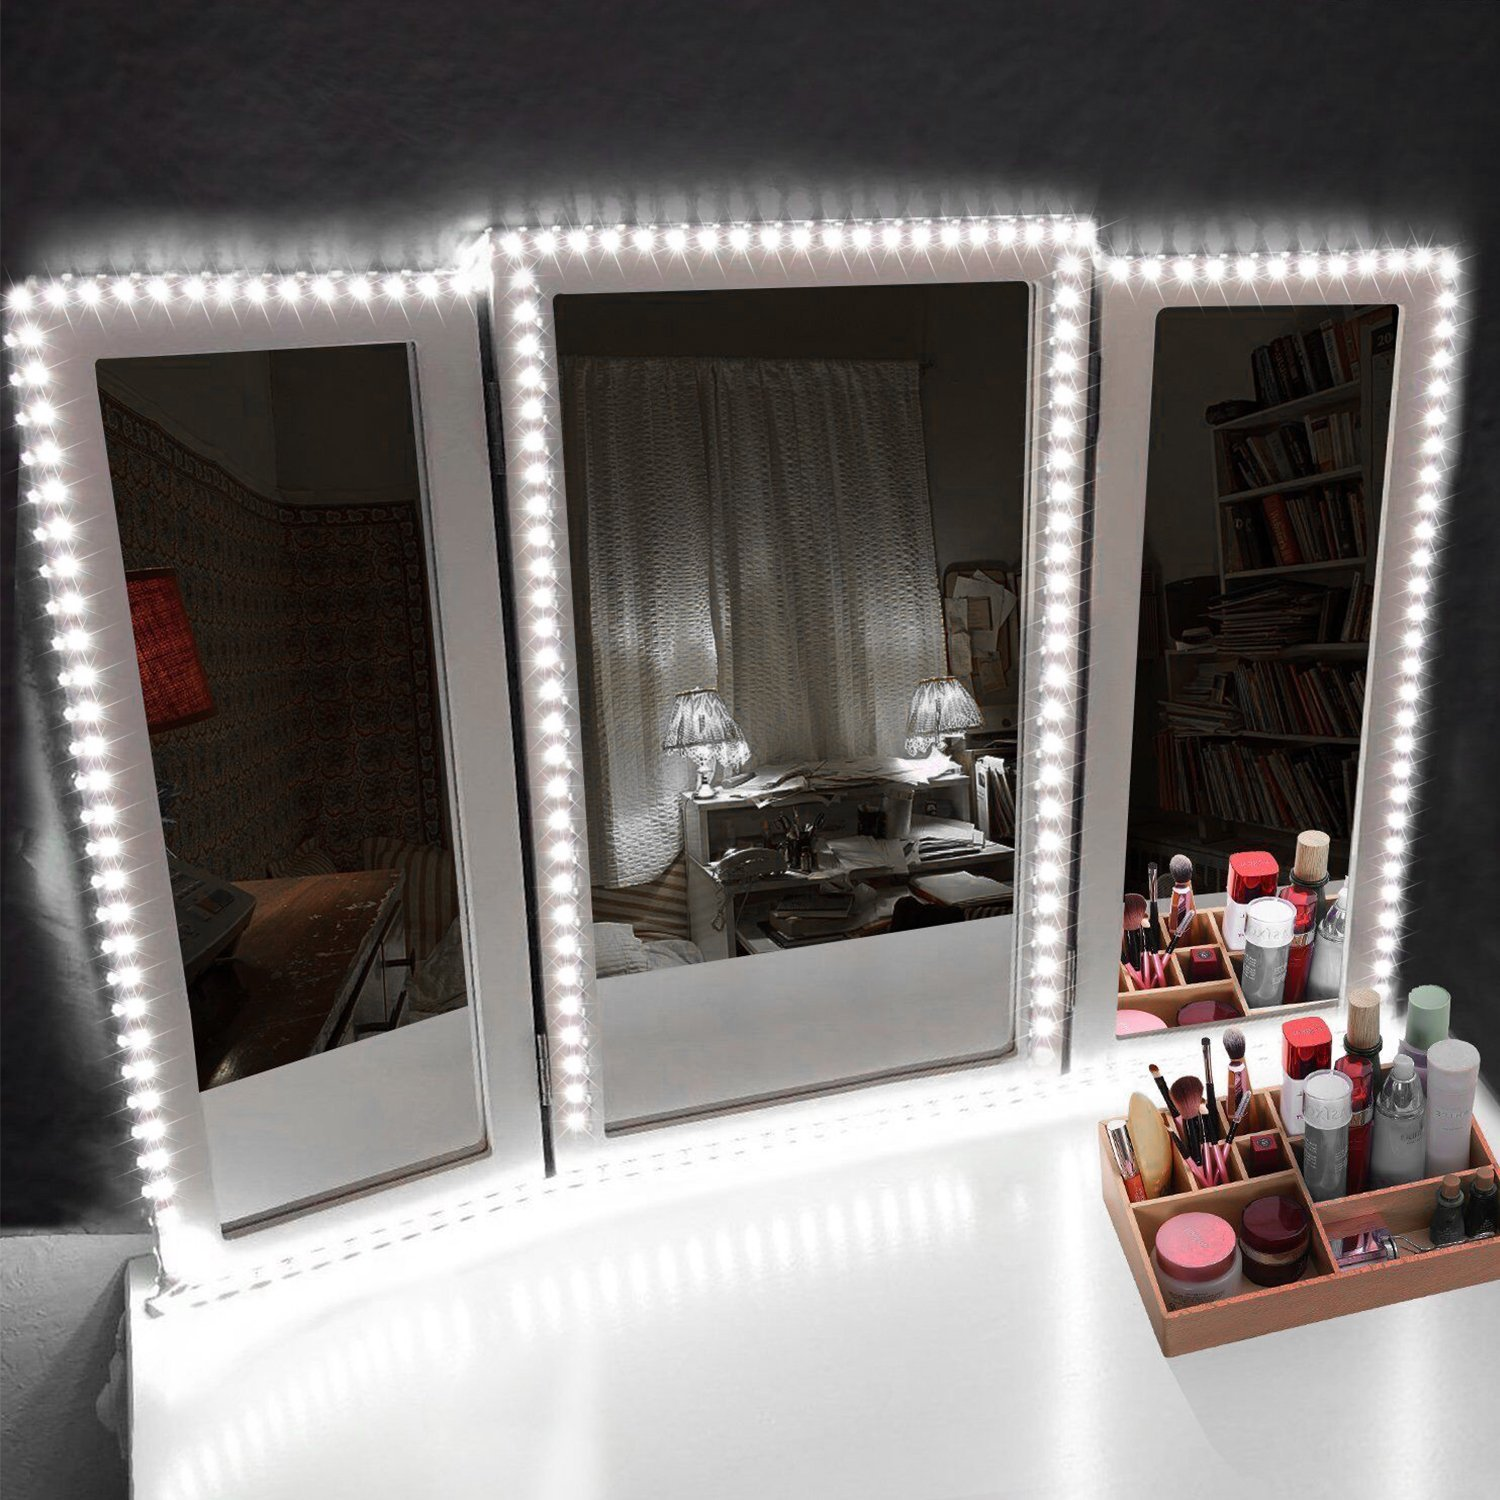 Led Vanity Mirror Lights Kit Kohree 13ft 4m Make Up Vanity Mirror Light Strip Diy Hollywood Style Mirror Light Walmart Com Walmart Com